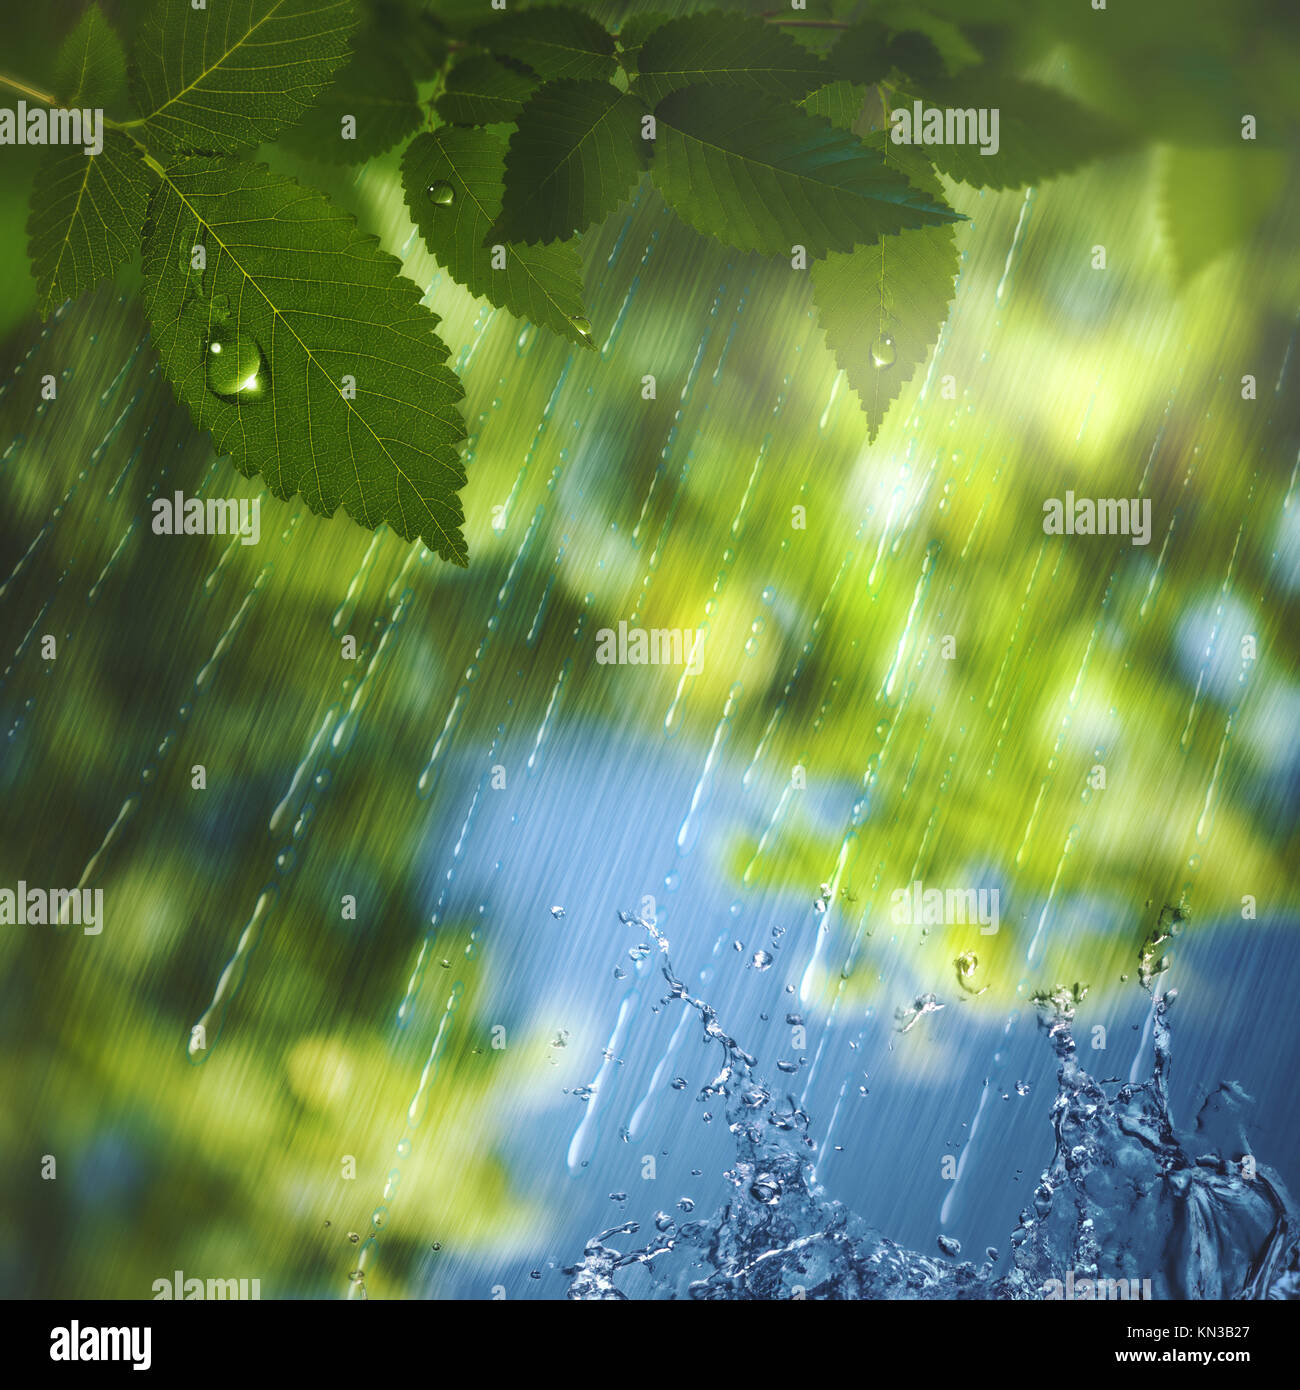 Summer rain, abstract seasonal background for your design. - Stock Image